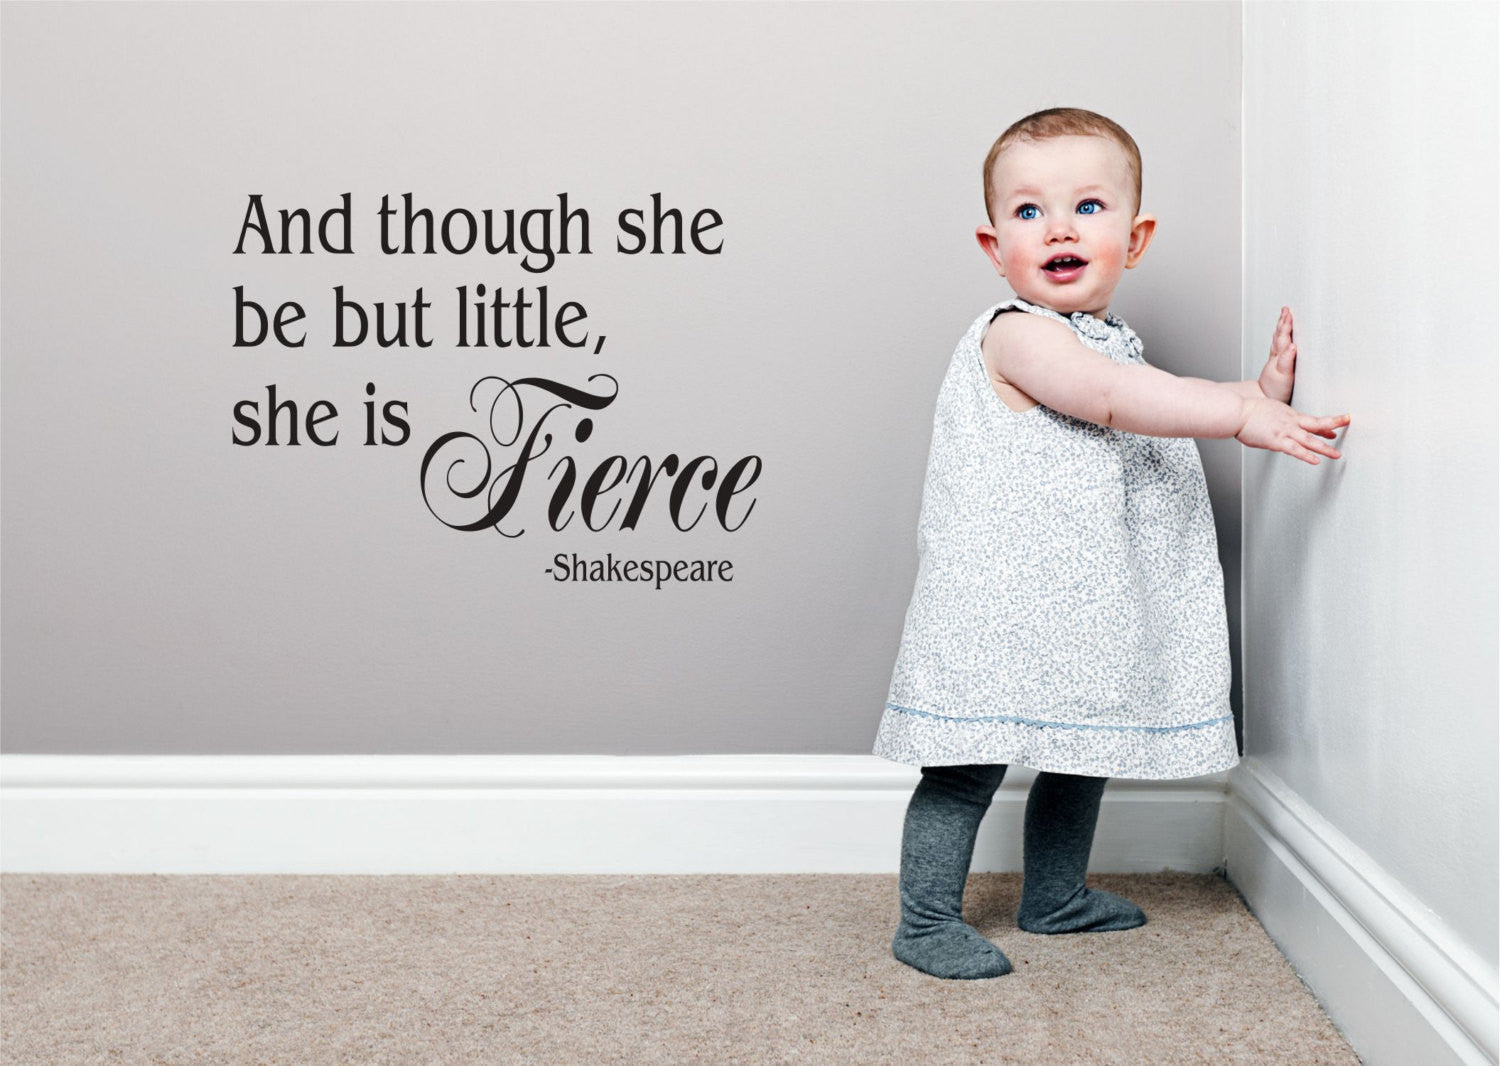 Nursery Decal - Shakespeare and though she be but little, she is fierce.